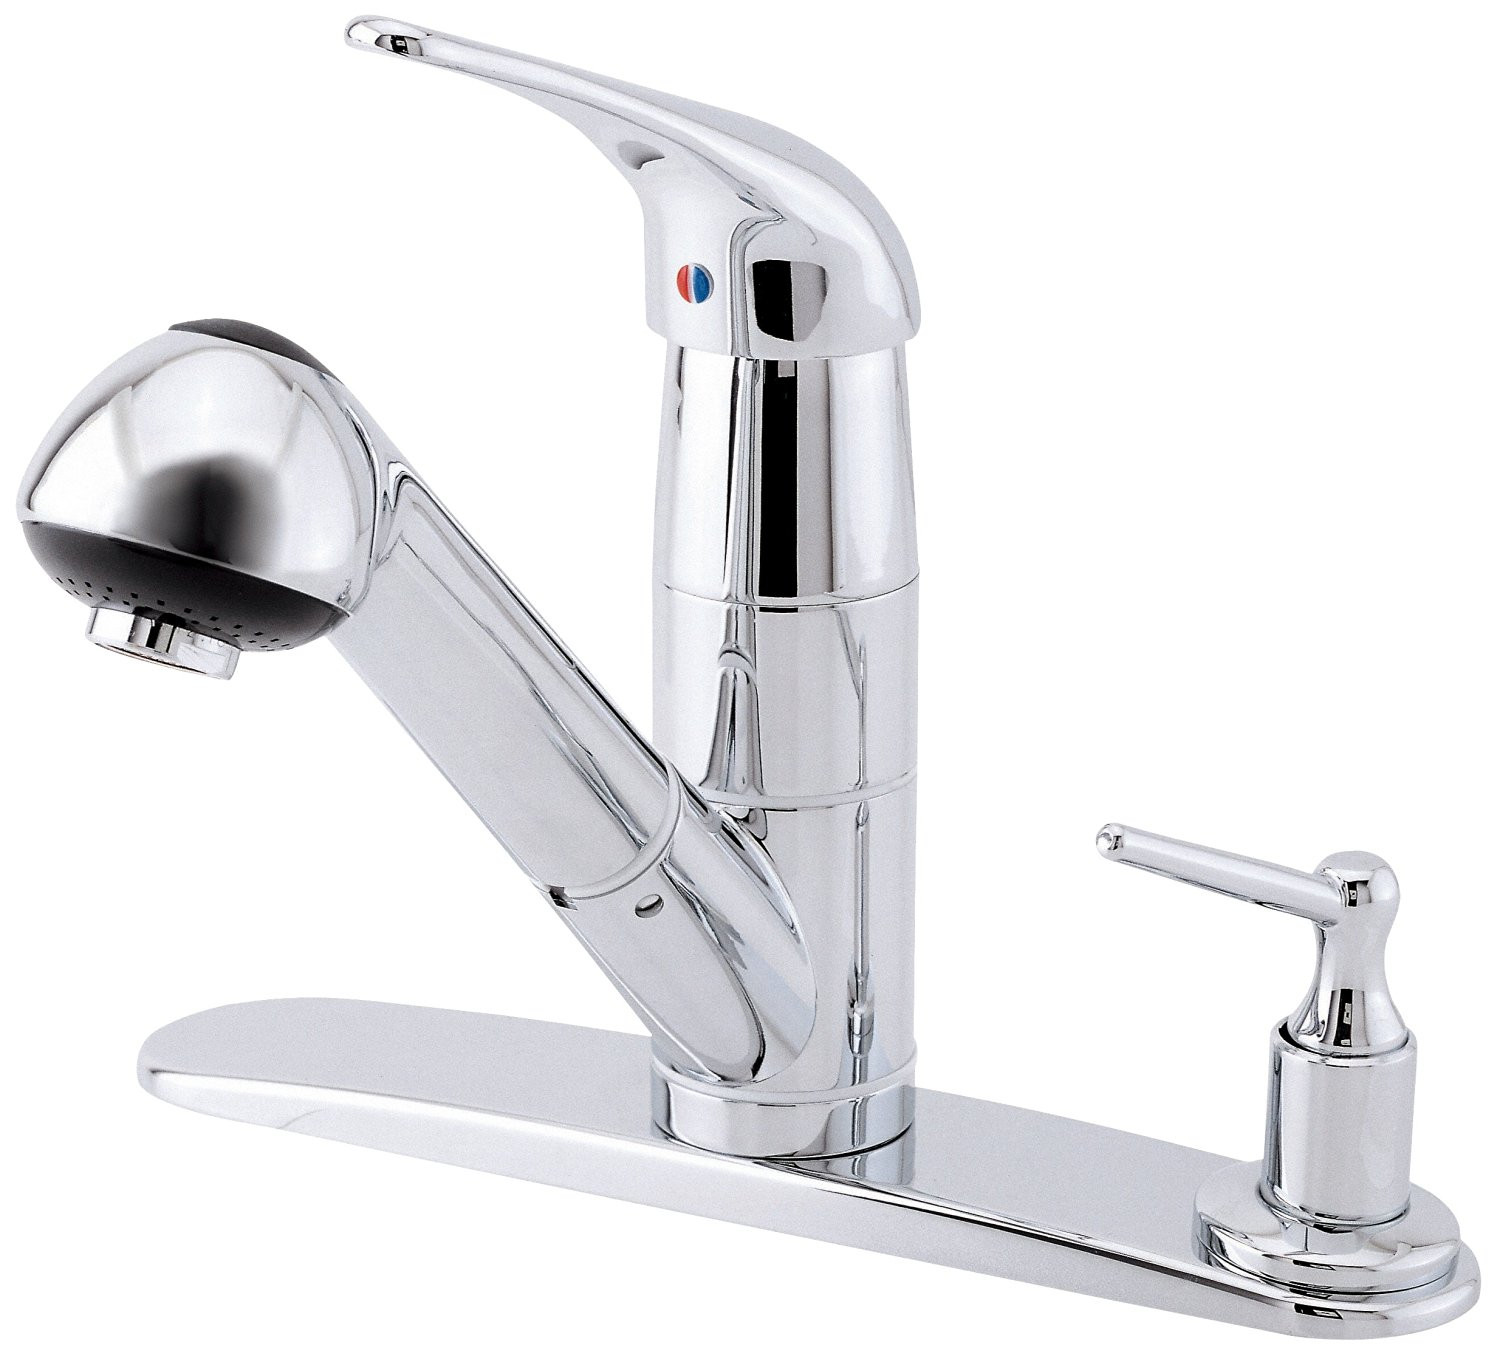 Danze D456612 One Handle Kitchen Faucet With Soap Dispenser on Deck In Chrome